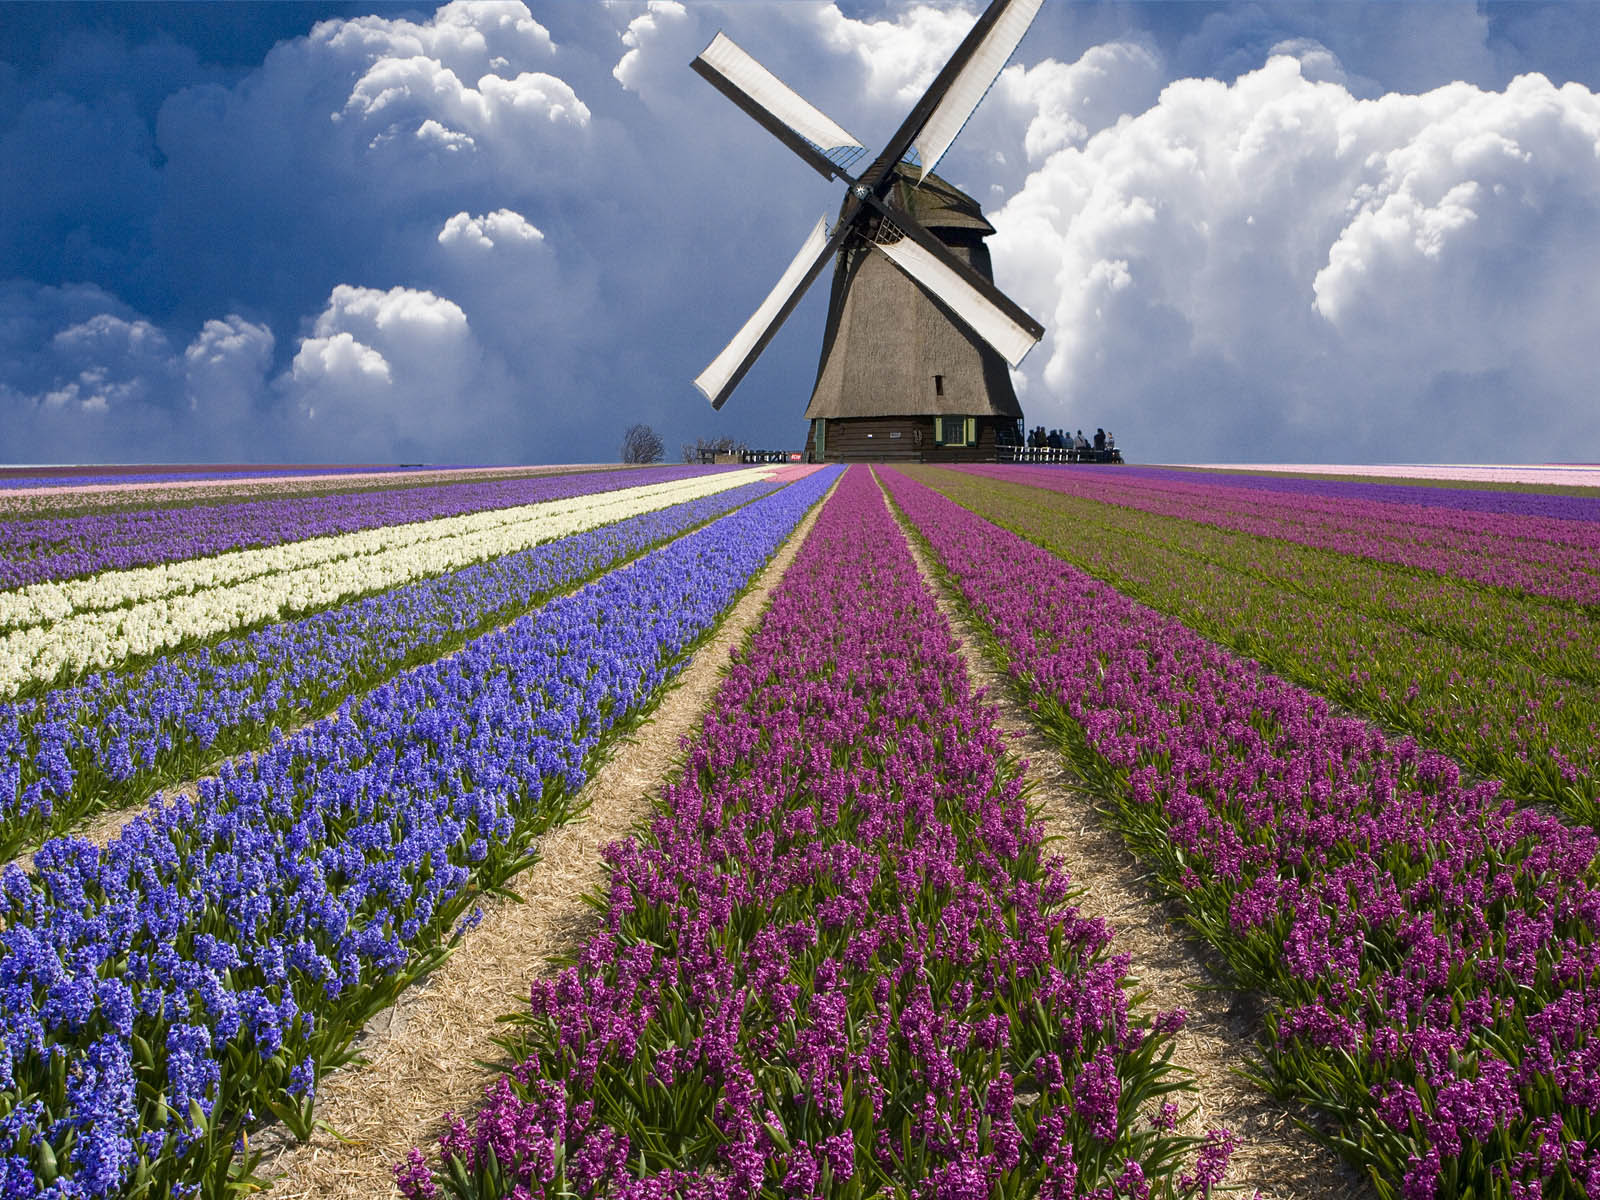 Windmill on a Flower Field in the Netherlands 1573.88 Kb